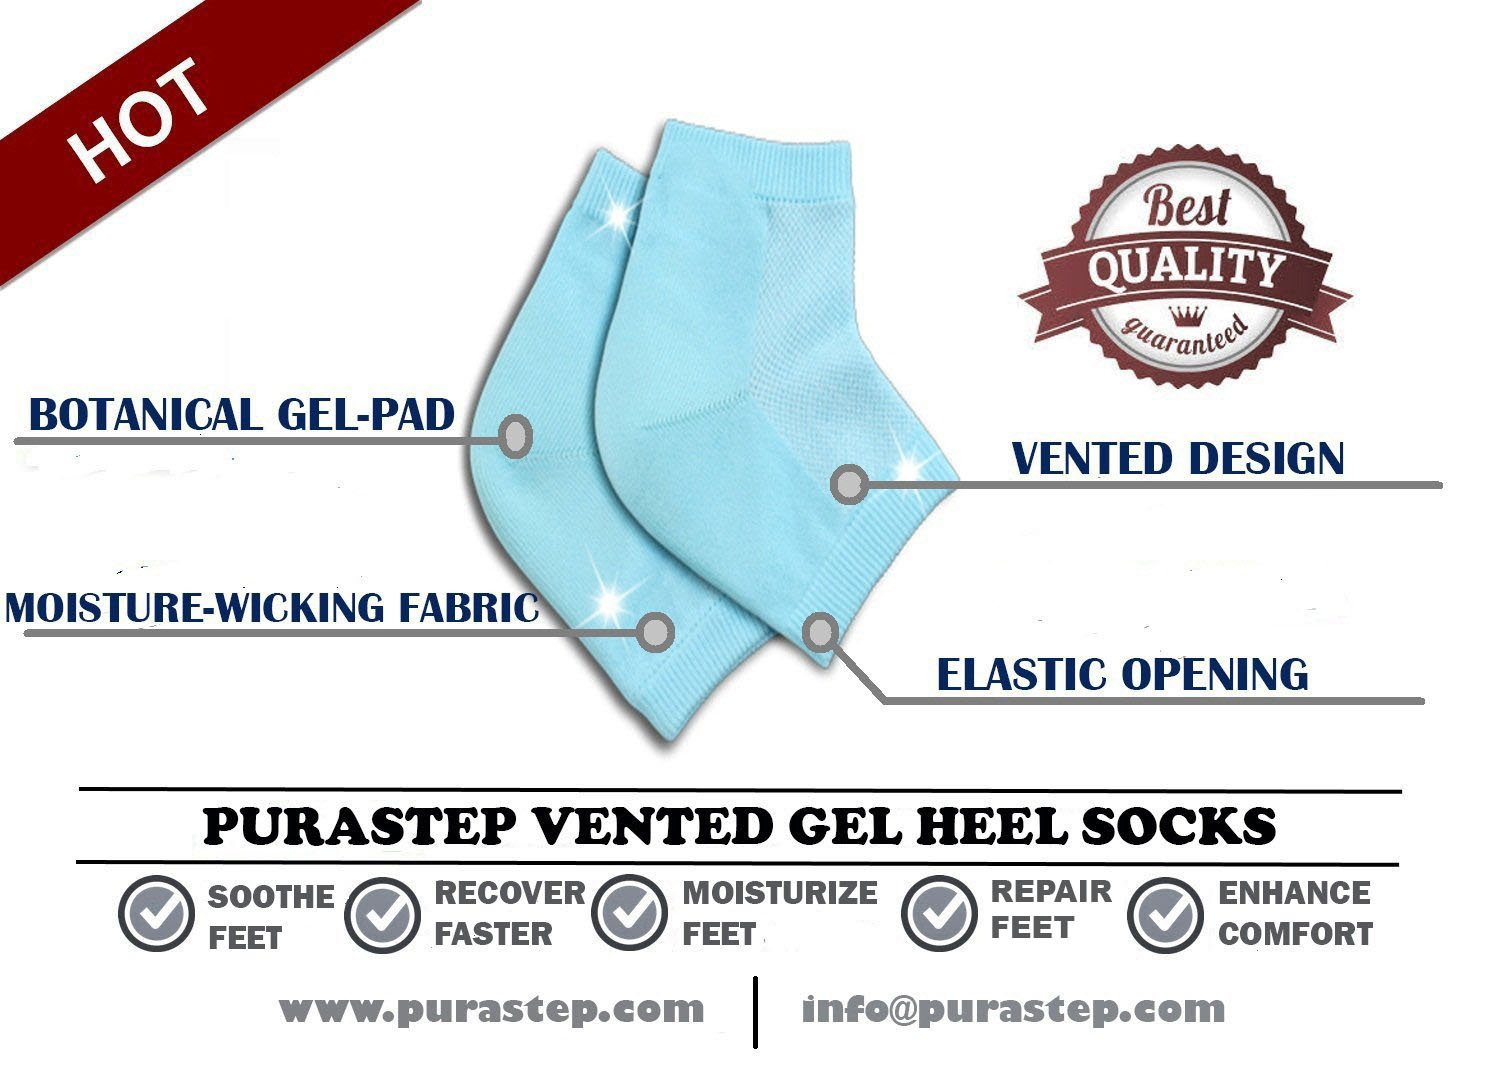 Purastep unisex silicone gel heel socks with spa botanical gelpad purastep unisex silicone gel heel socks with spa botanical gelpad free size blue 1 pair amazon health personal care fandeluxe Images